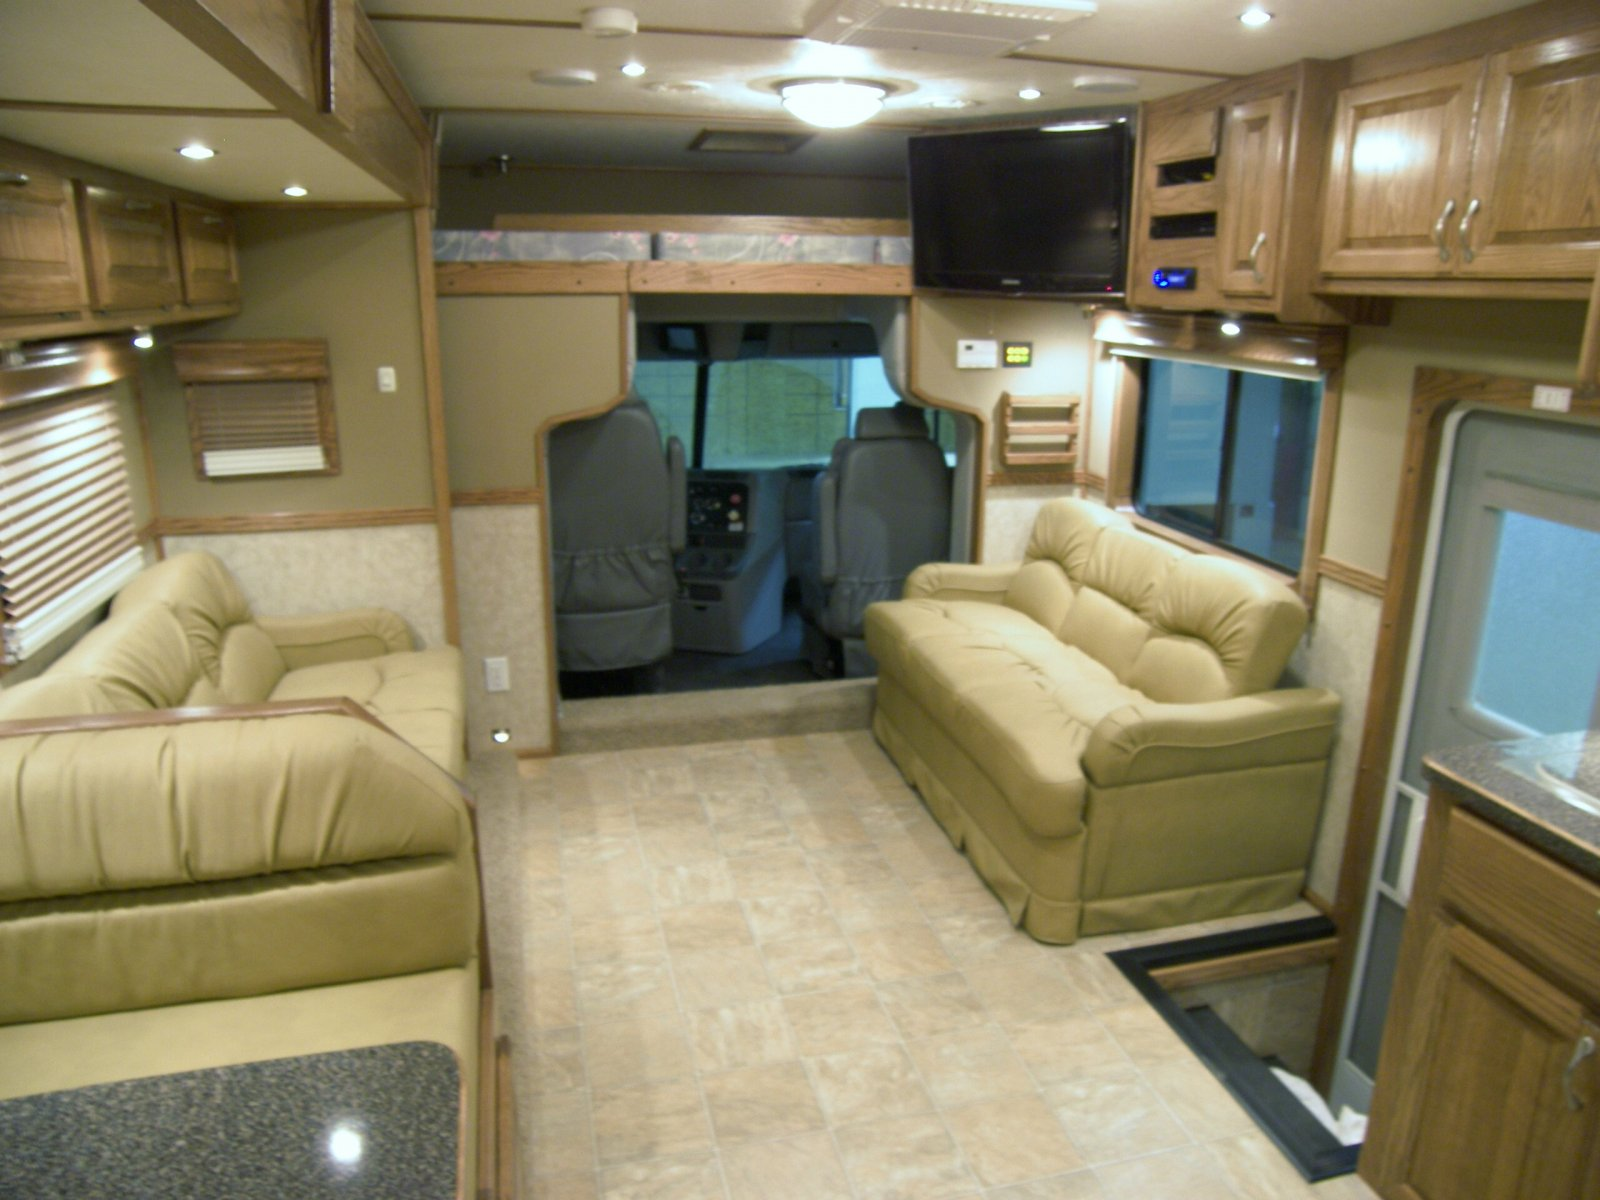 New 2012 ShowHauler Motorhome - iRV2 Forums